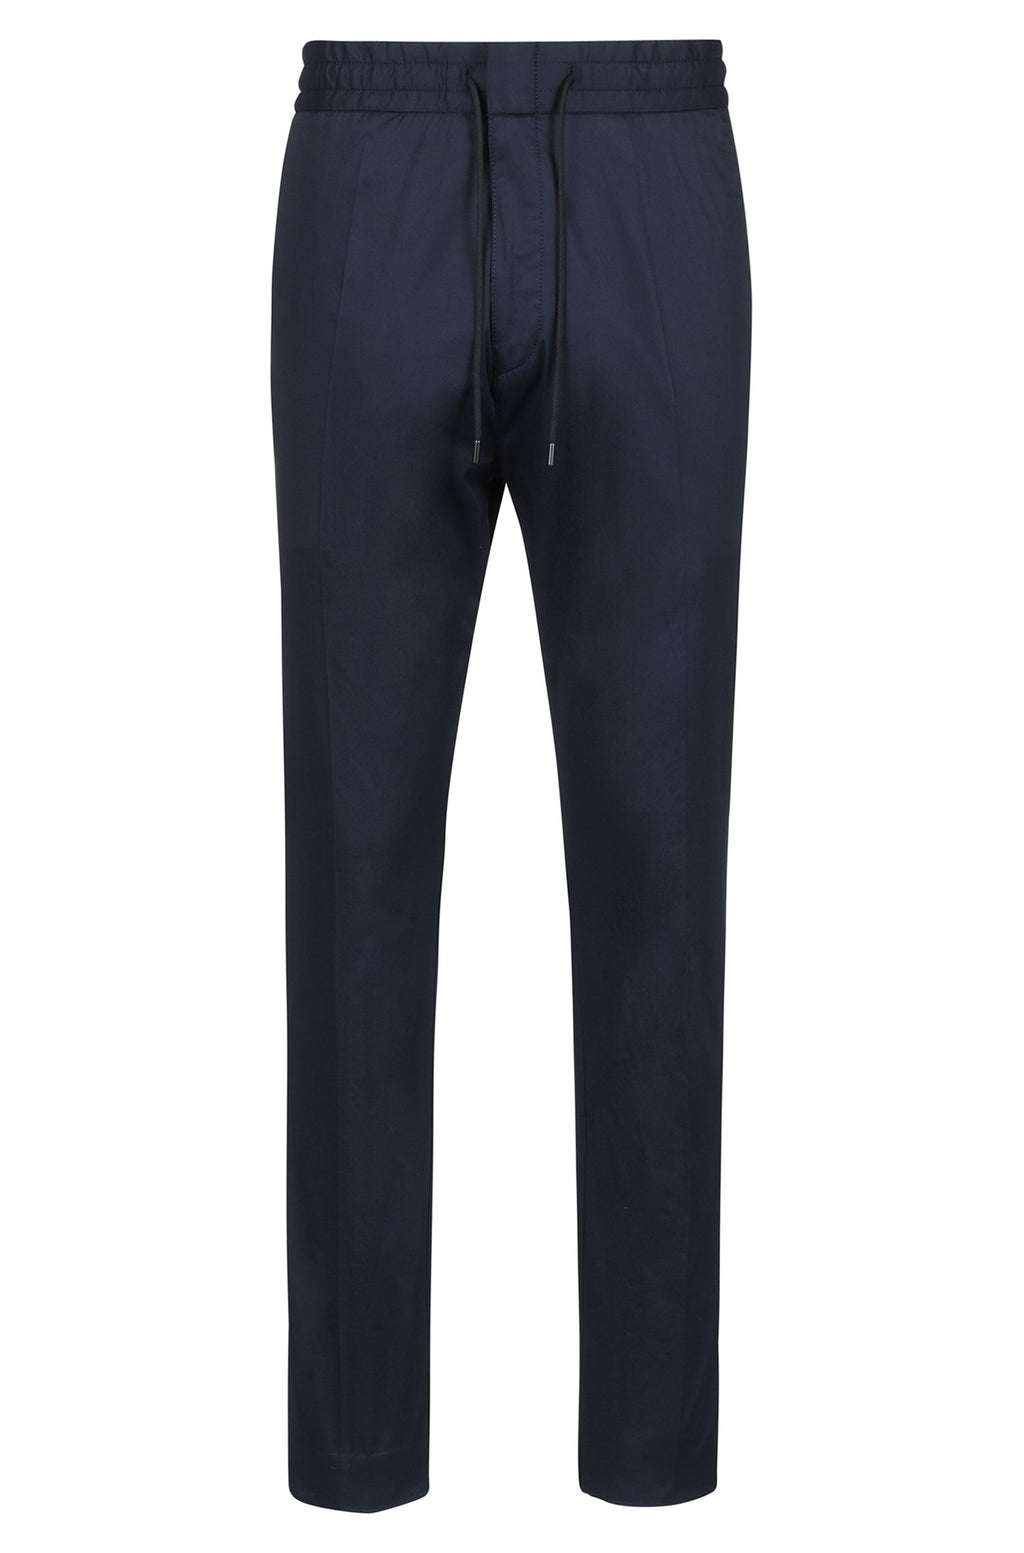 Hugo Boss Tapered Trousers with Waistband - Maison De Fashion